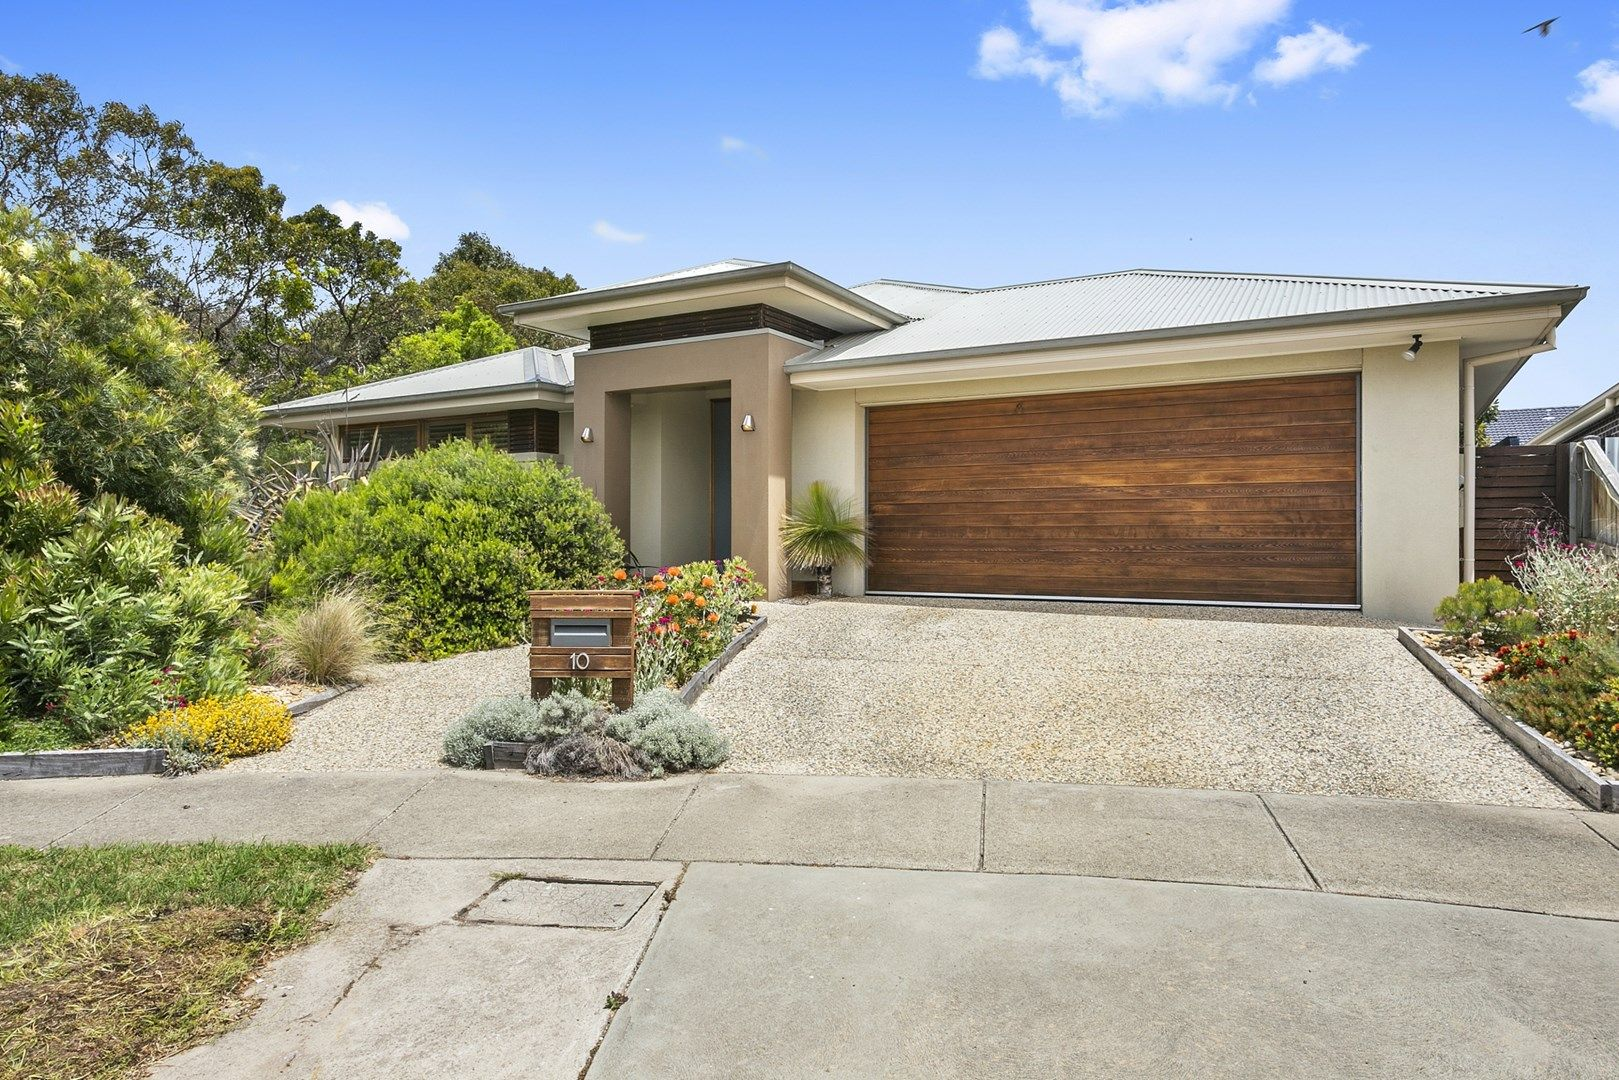 10 Lawrenny Court, Barwon Heads VIC 3227, Image 0